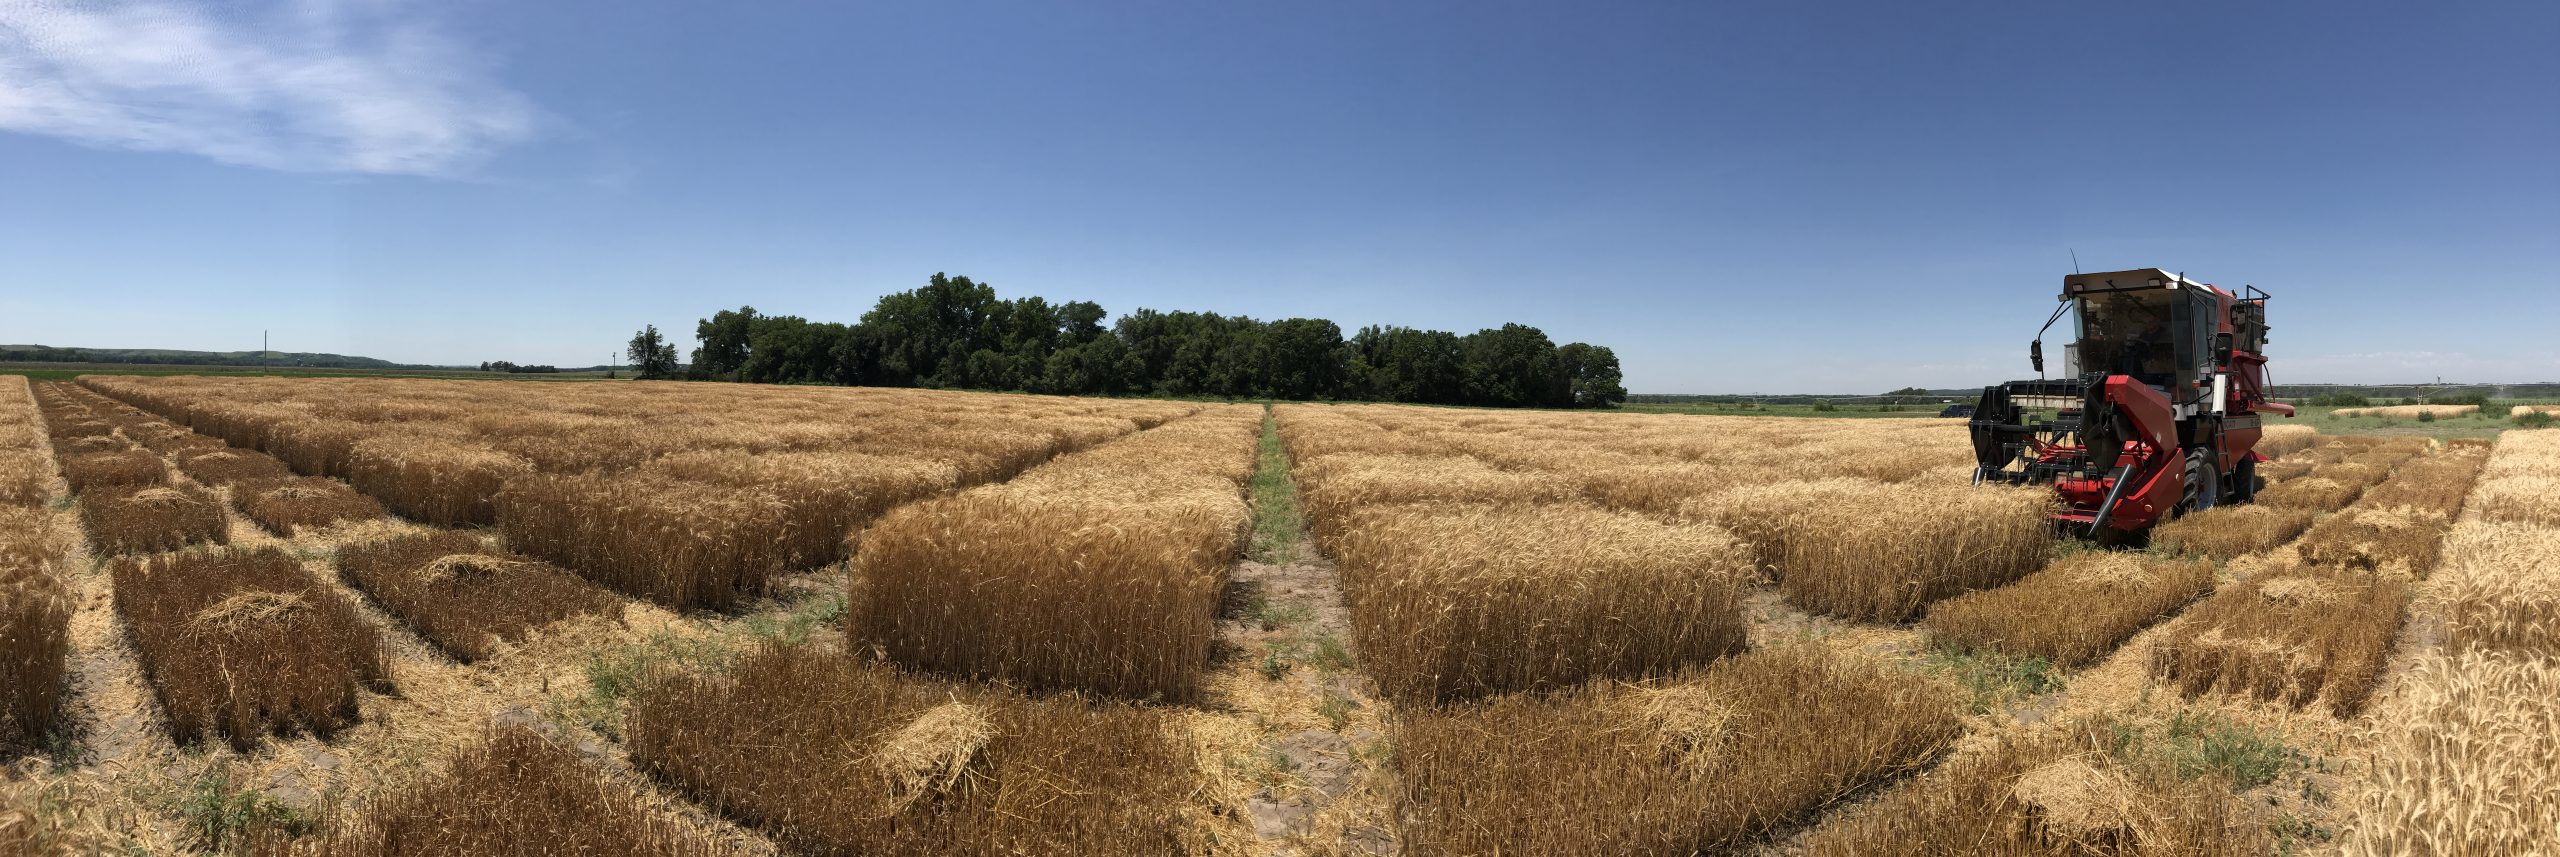 Nearly $1 million grant to help university researchers develop prediction models for determining best new winter wheat varieties